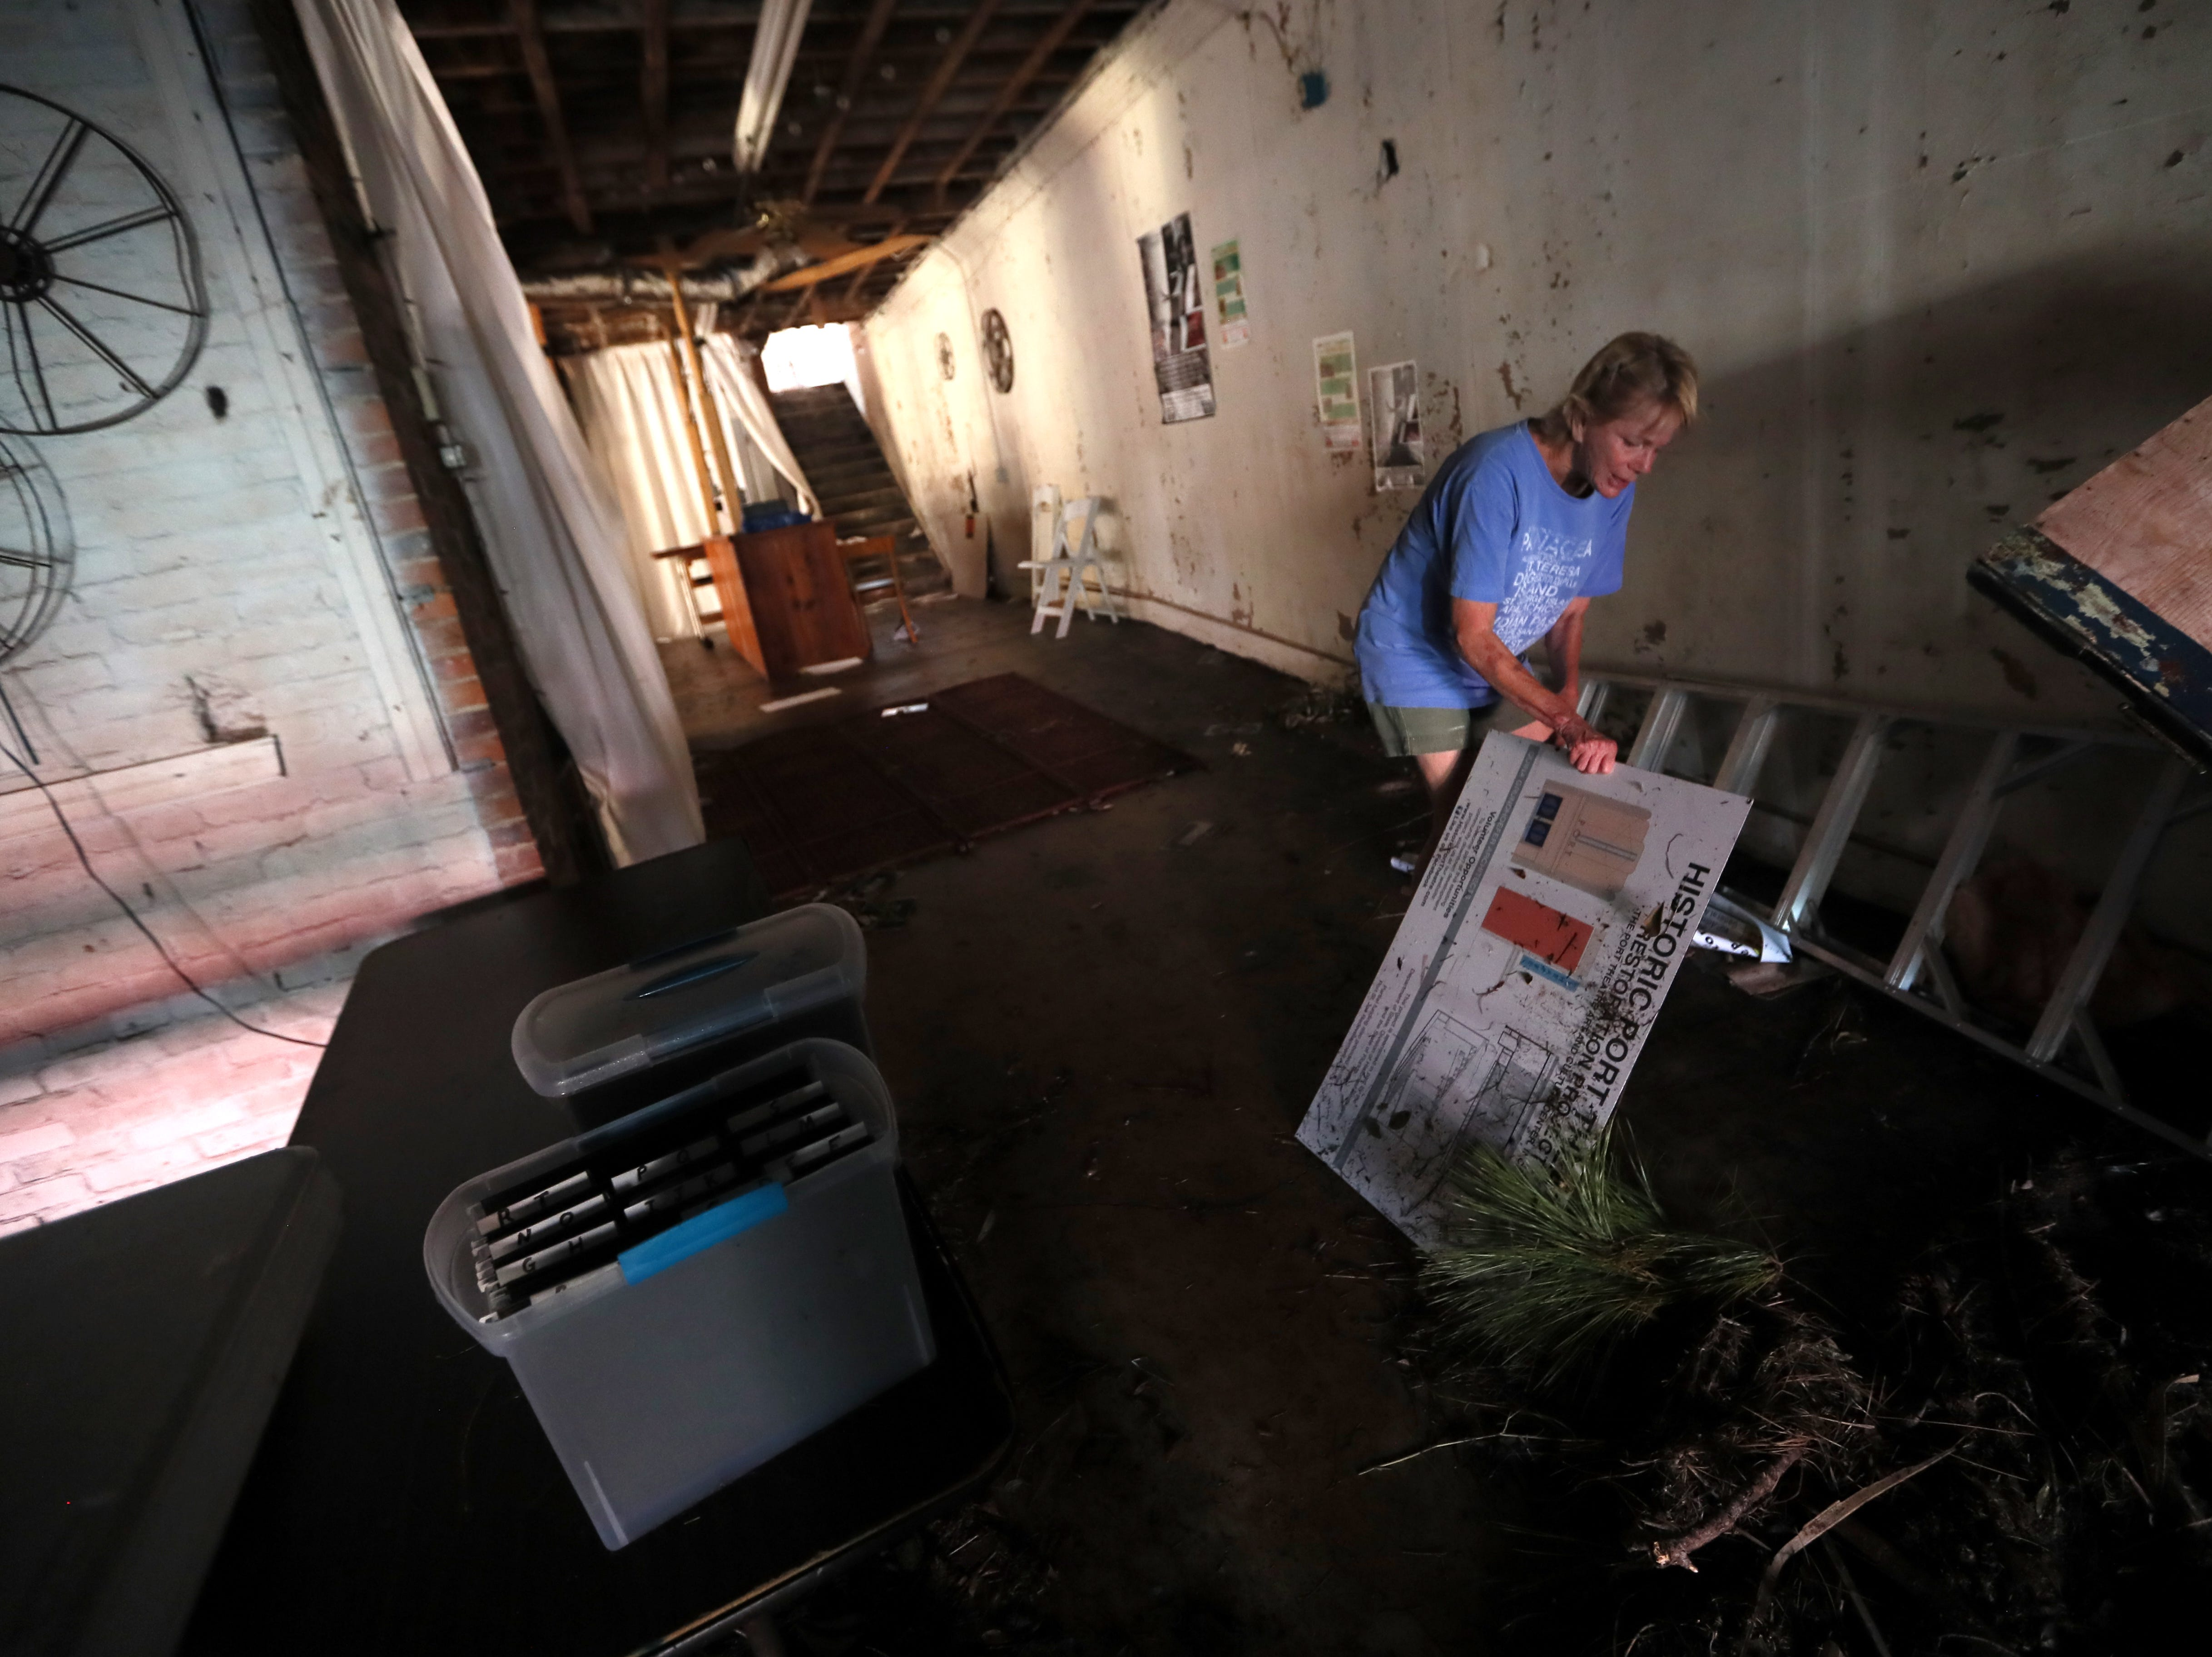 Natalie Shoaf, a member of the board of directors for the Historic Port Theatre on Reid Avenue downtown, looks in on the storm damaged space after Hurricane Michael's pass in Port St. Joe on Tuesday, Oct. 16, 2018.